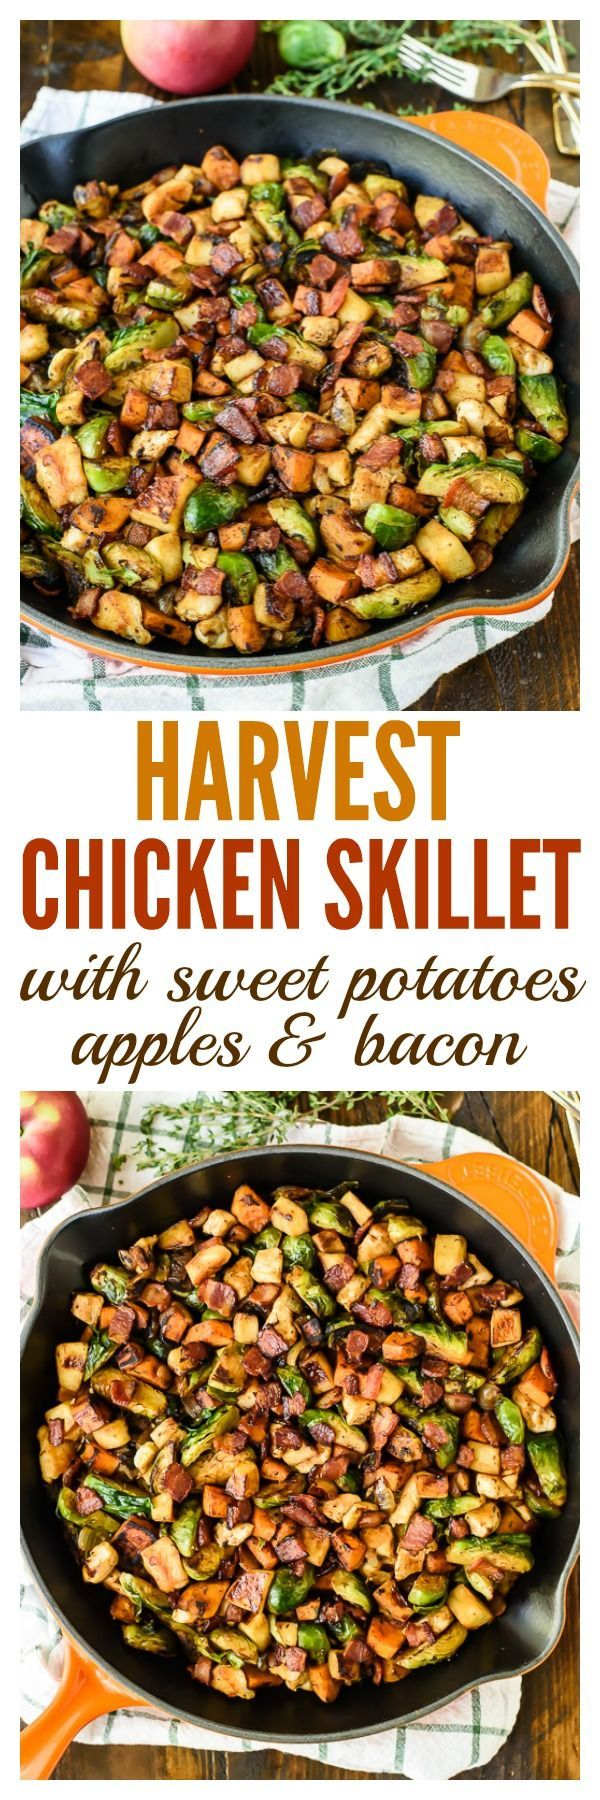 Harvest Chicken Skillet with Sweet Potatoes, Apples, Brussels Sprouts and Bacon. An easy, healthy dinner recipe!